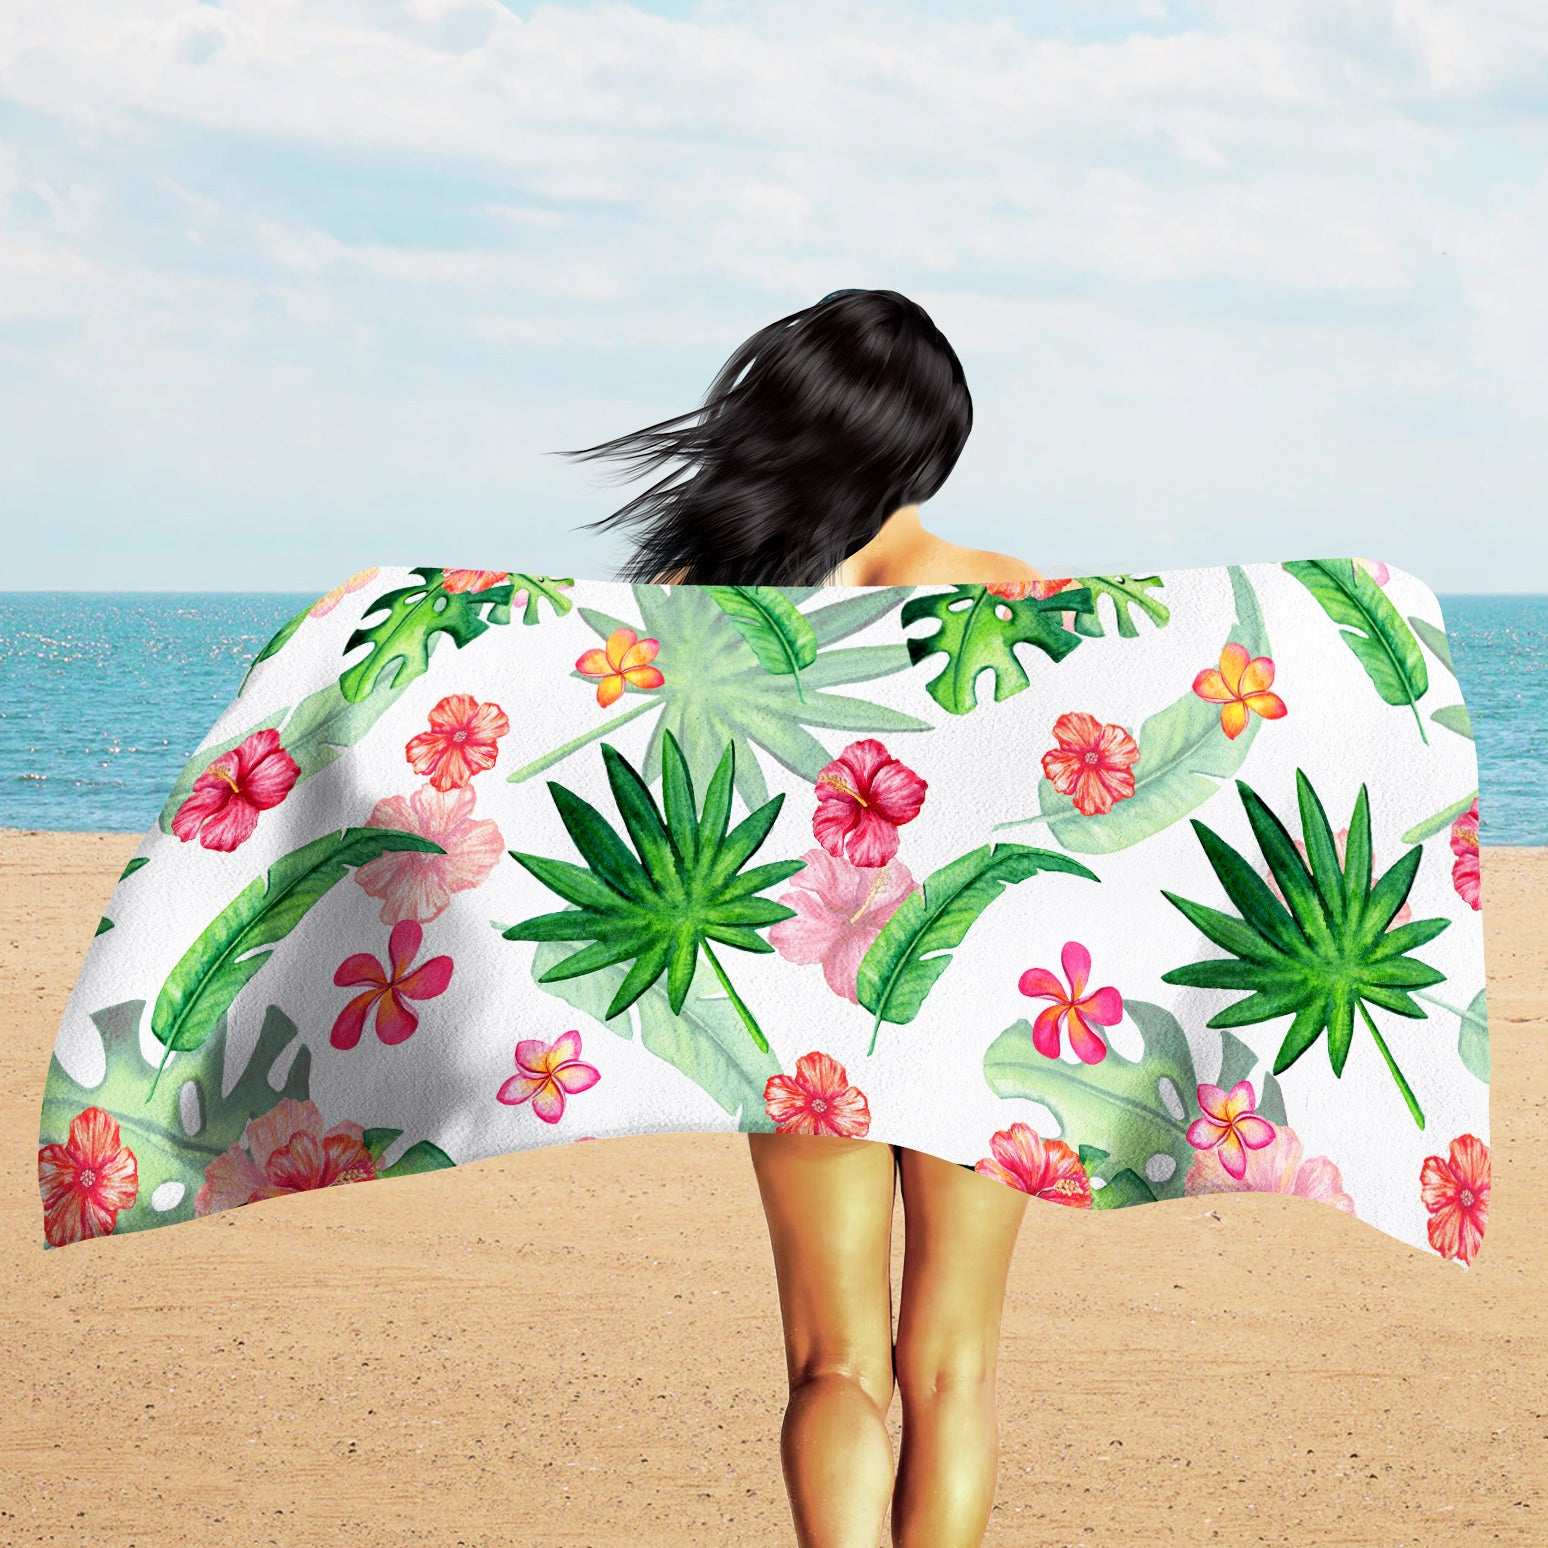 Tropical Leaves Beach Towel - Huge Beach Towel | Brandless Artist